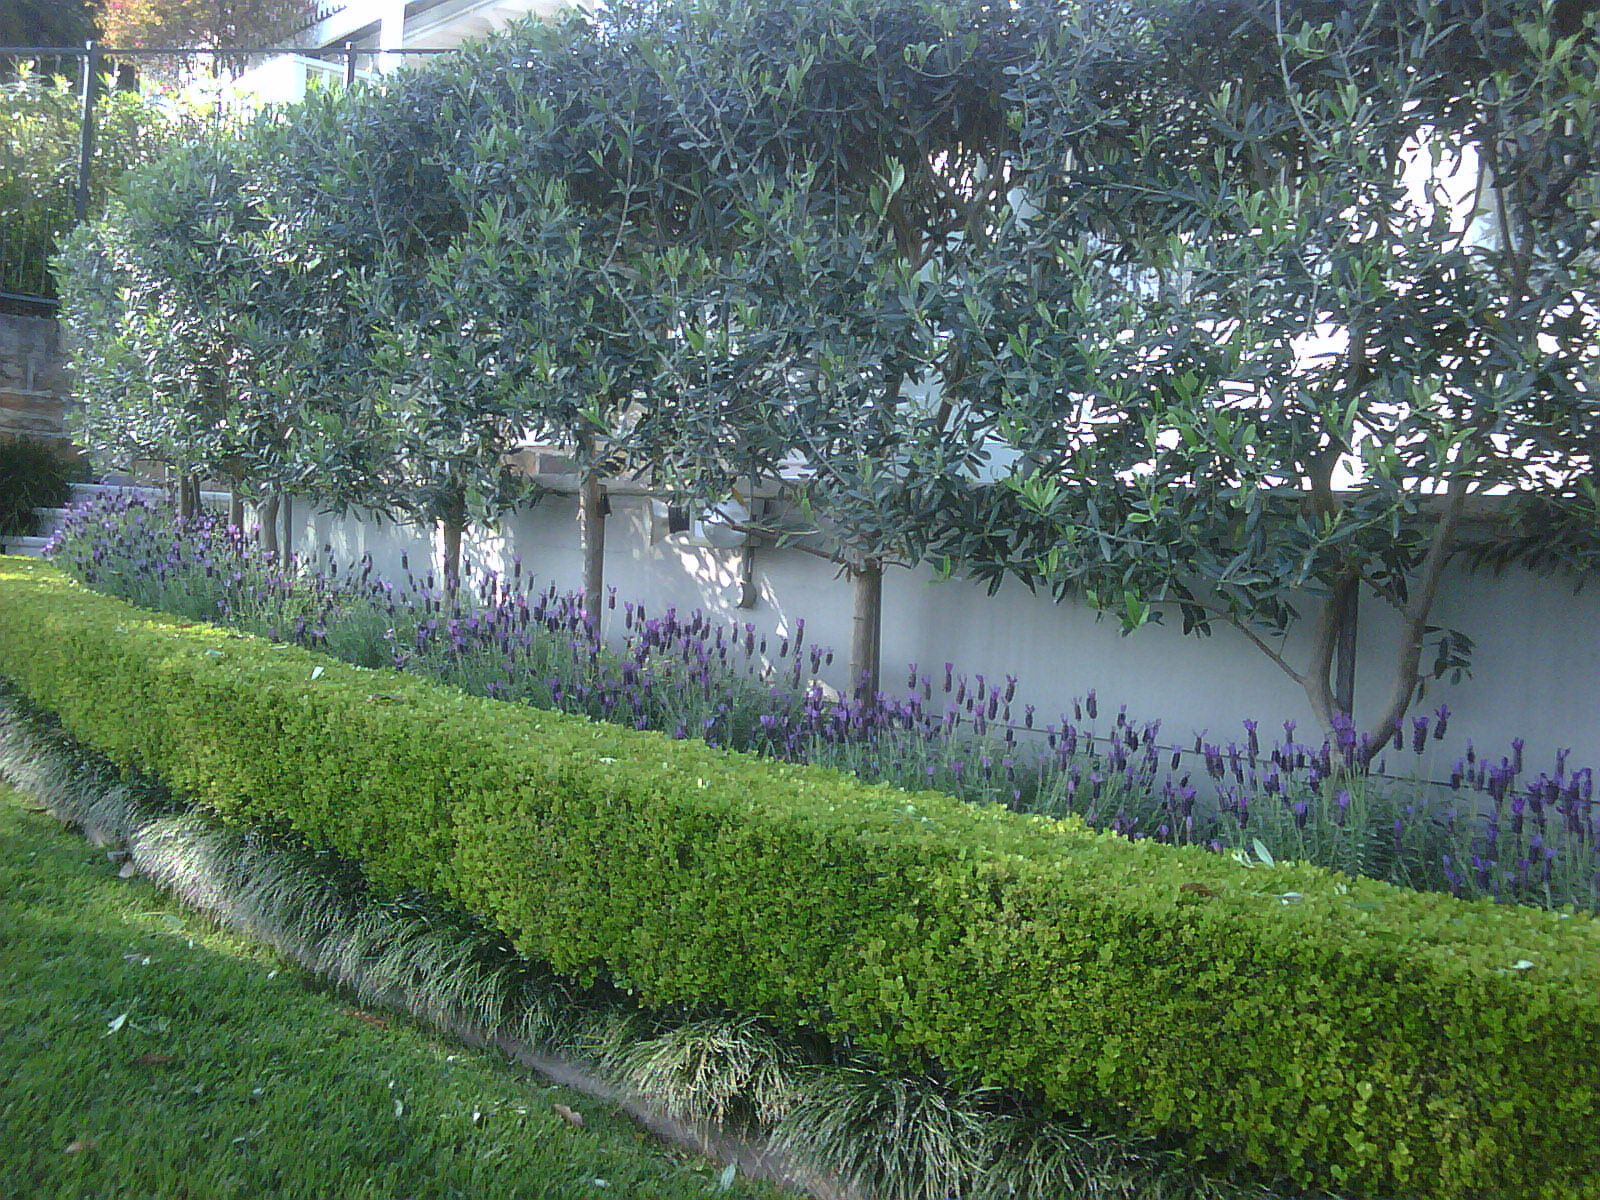 Olive trees privacy screen garden ideas pinterest for Garden design ideas for privacy